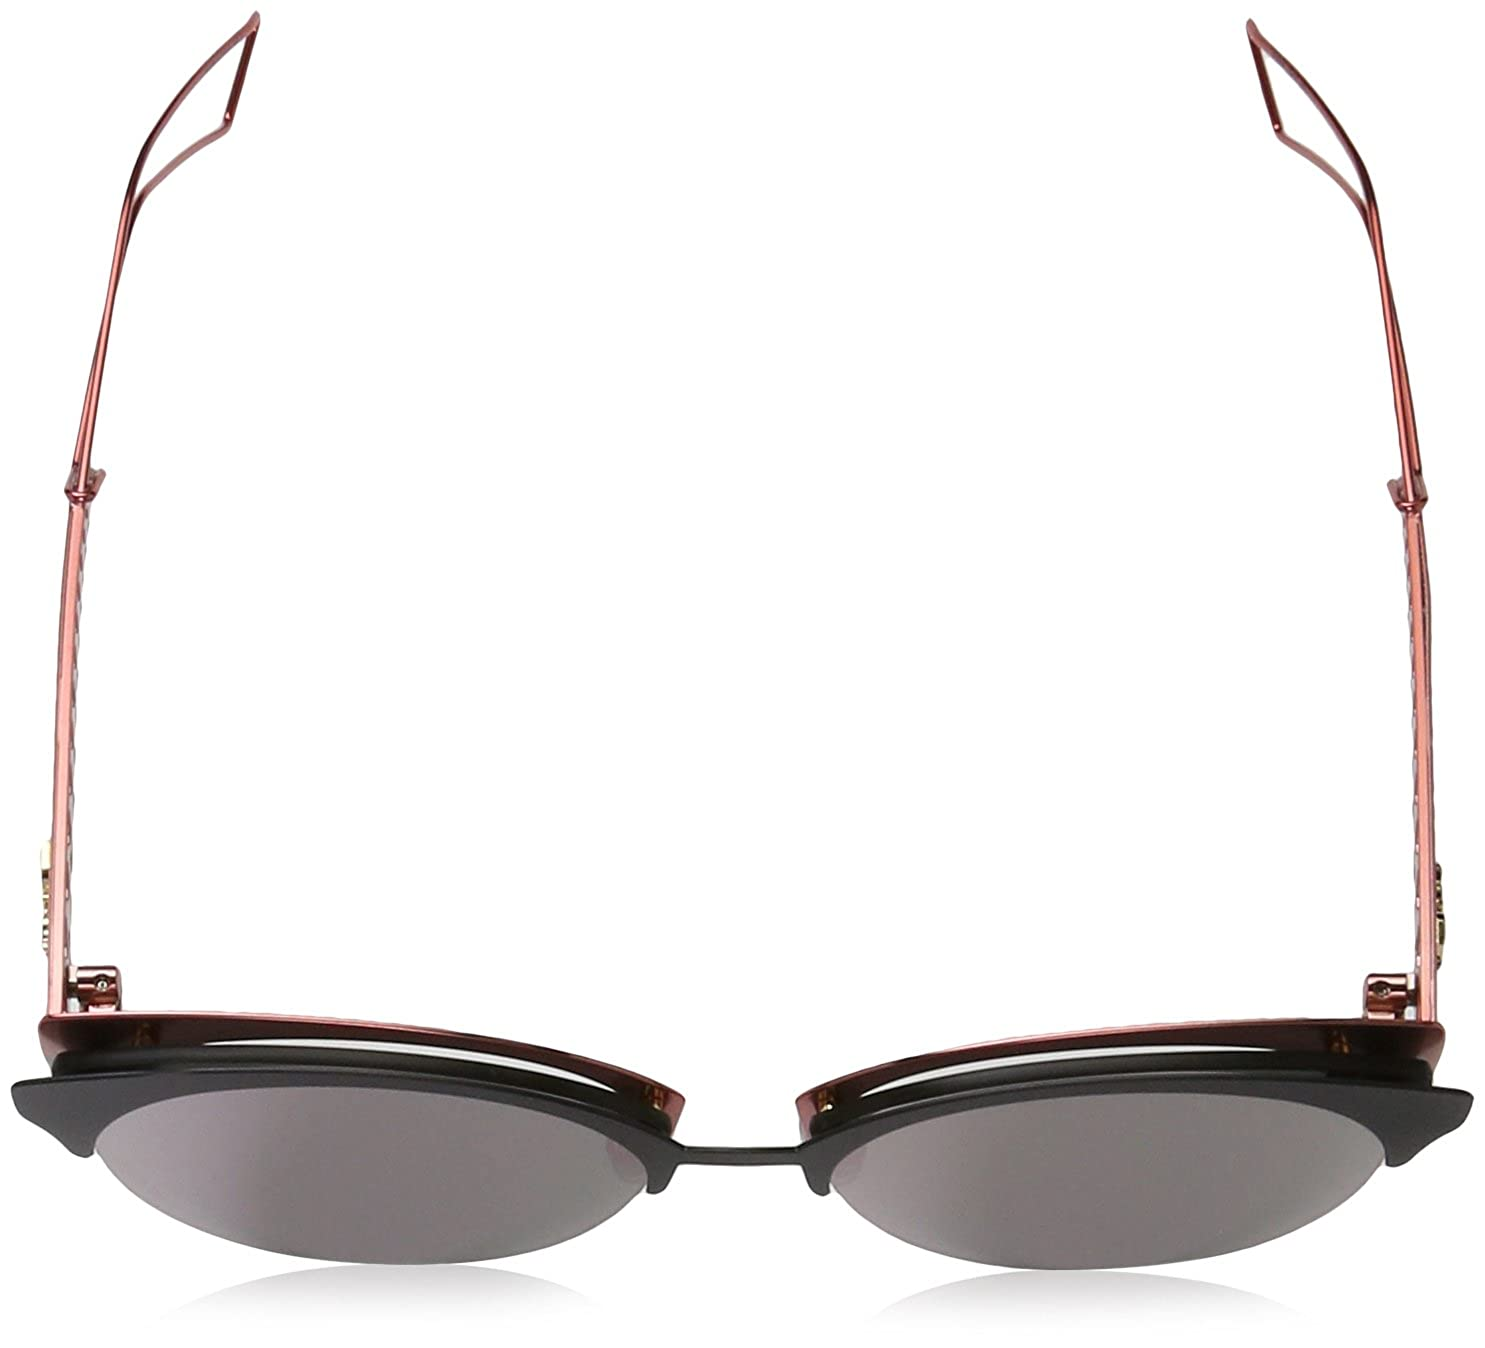 3ddacfef2c5 Amazon.com  Christian Dior Diorama Club Sunglasses Matte Black Red Grey  Rose Gold (EYM AP)  Clothing